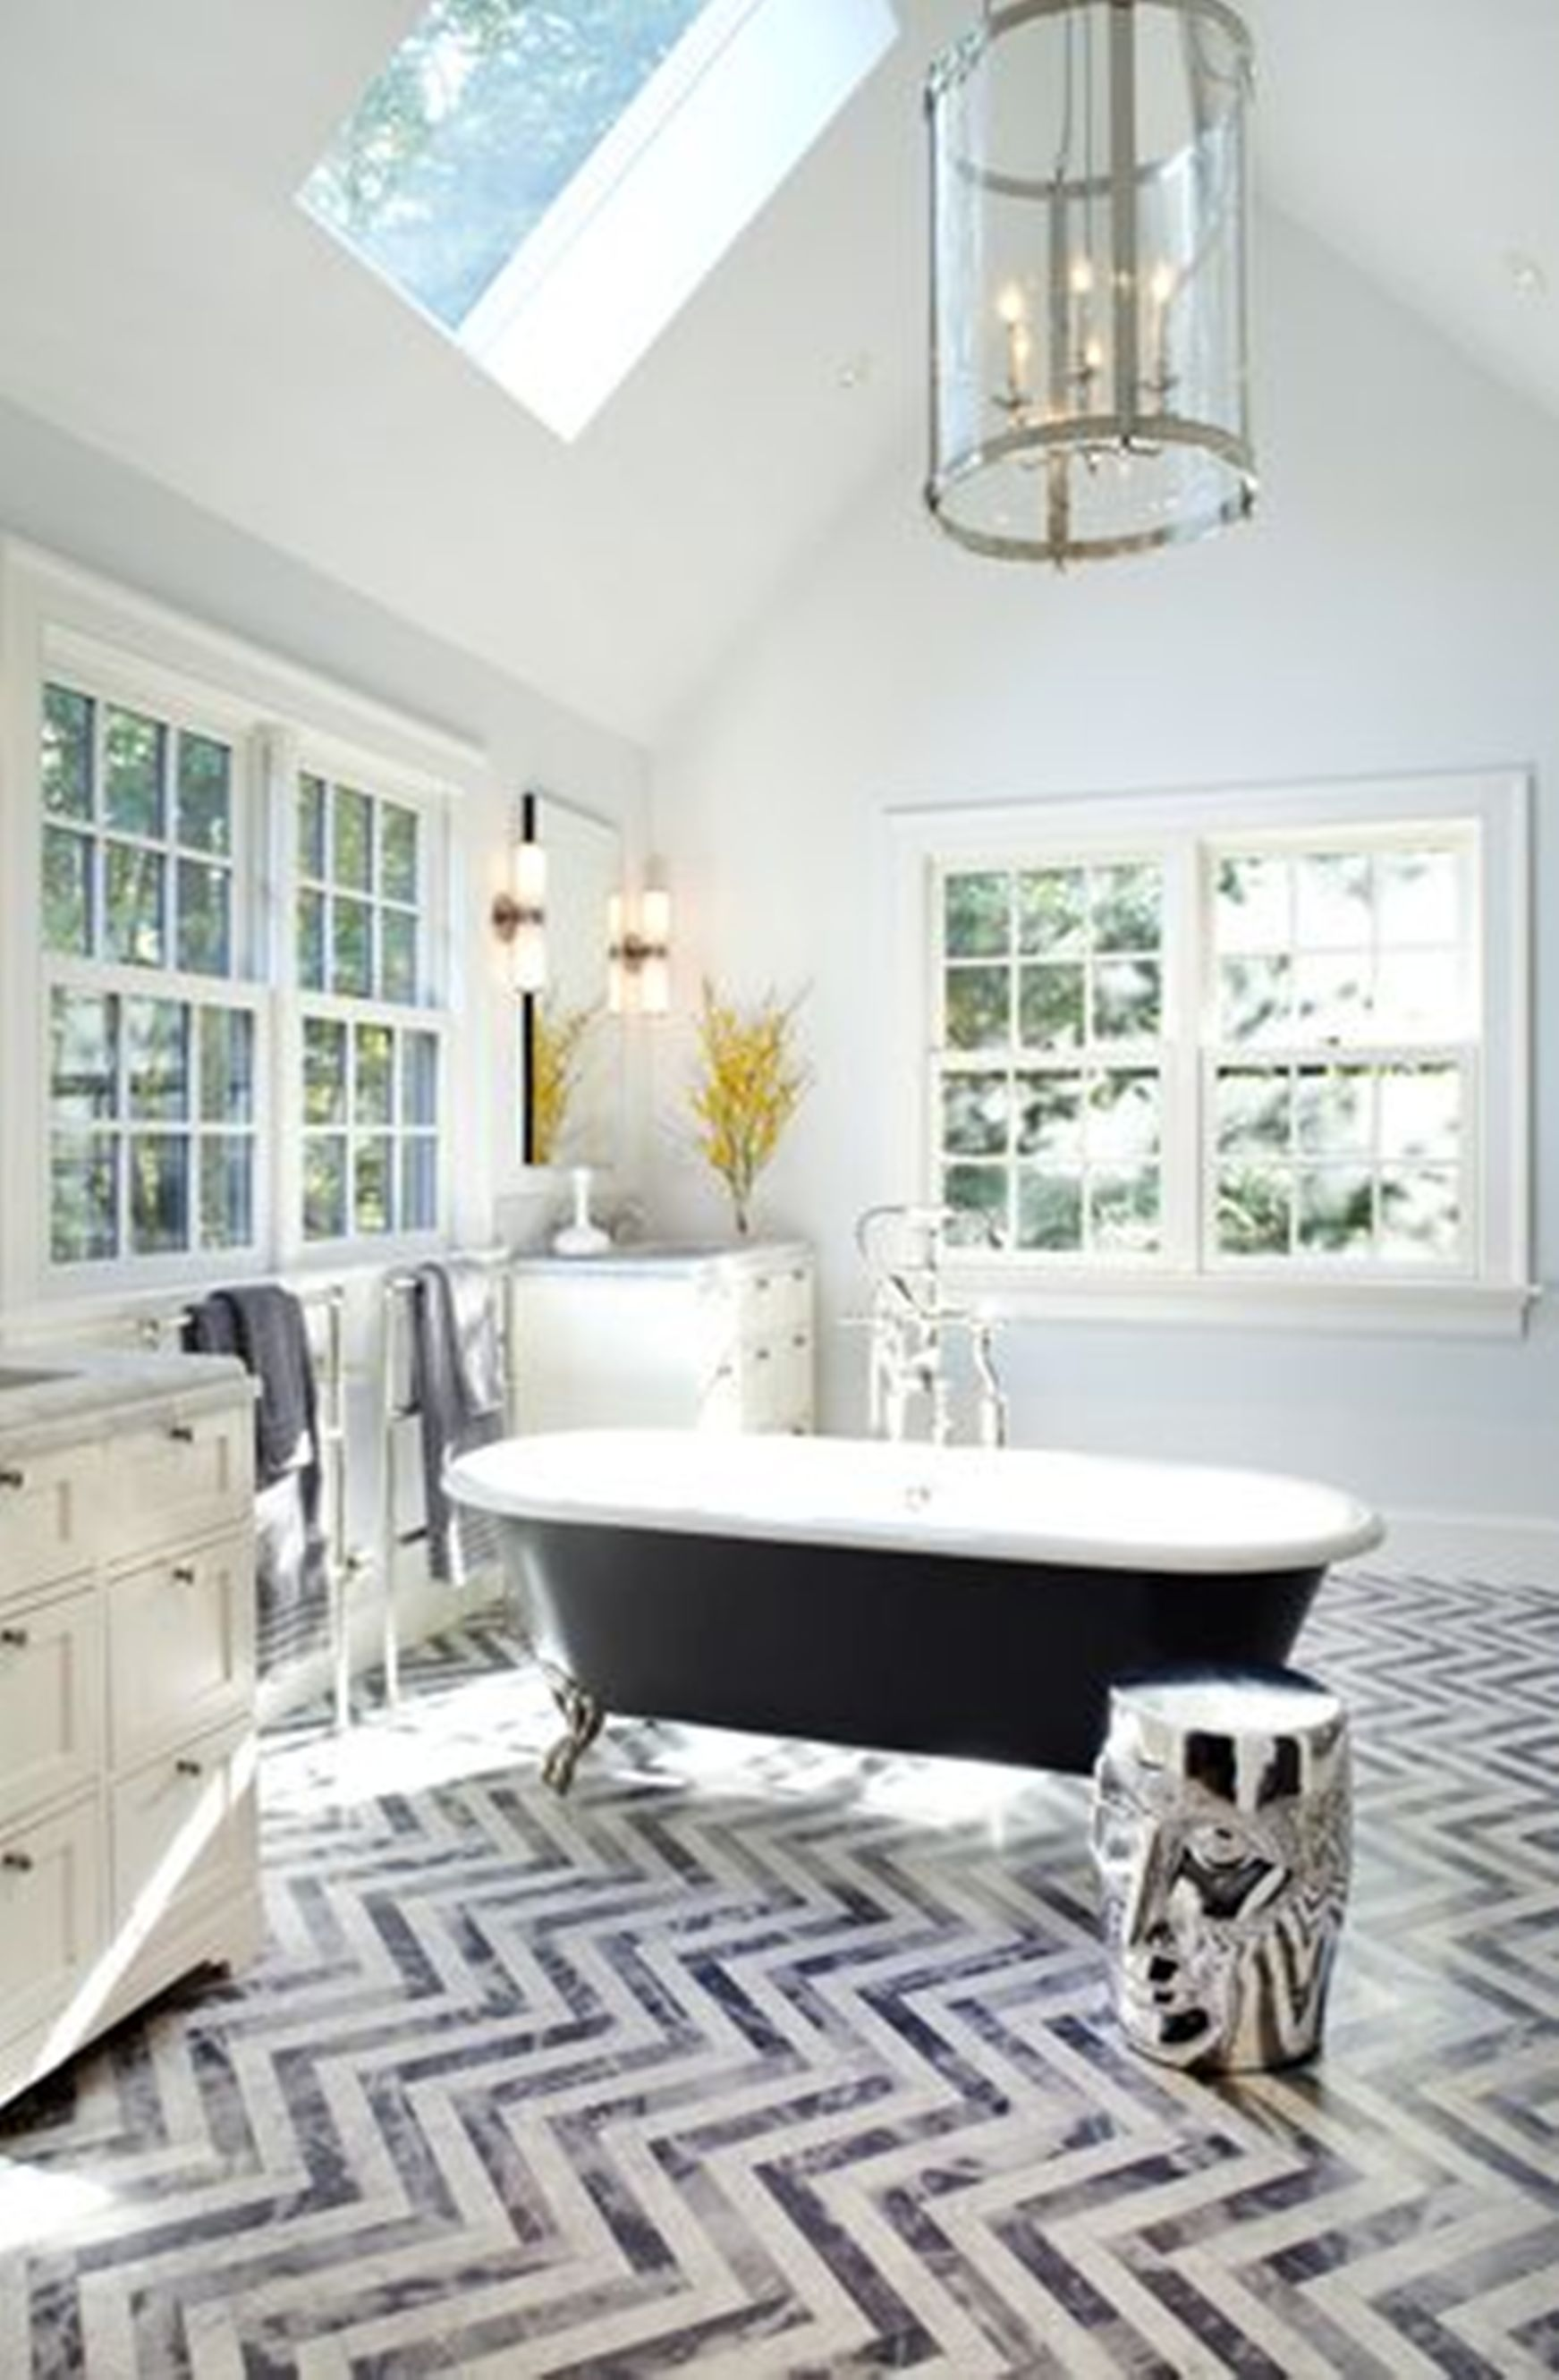 Dainty Bathroom Using Zigzag Stripe Floor Tile also Bathtub Decor